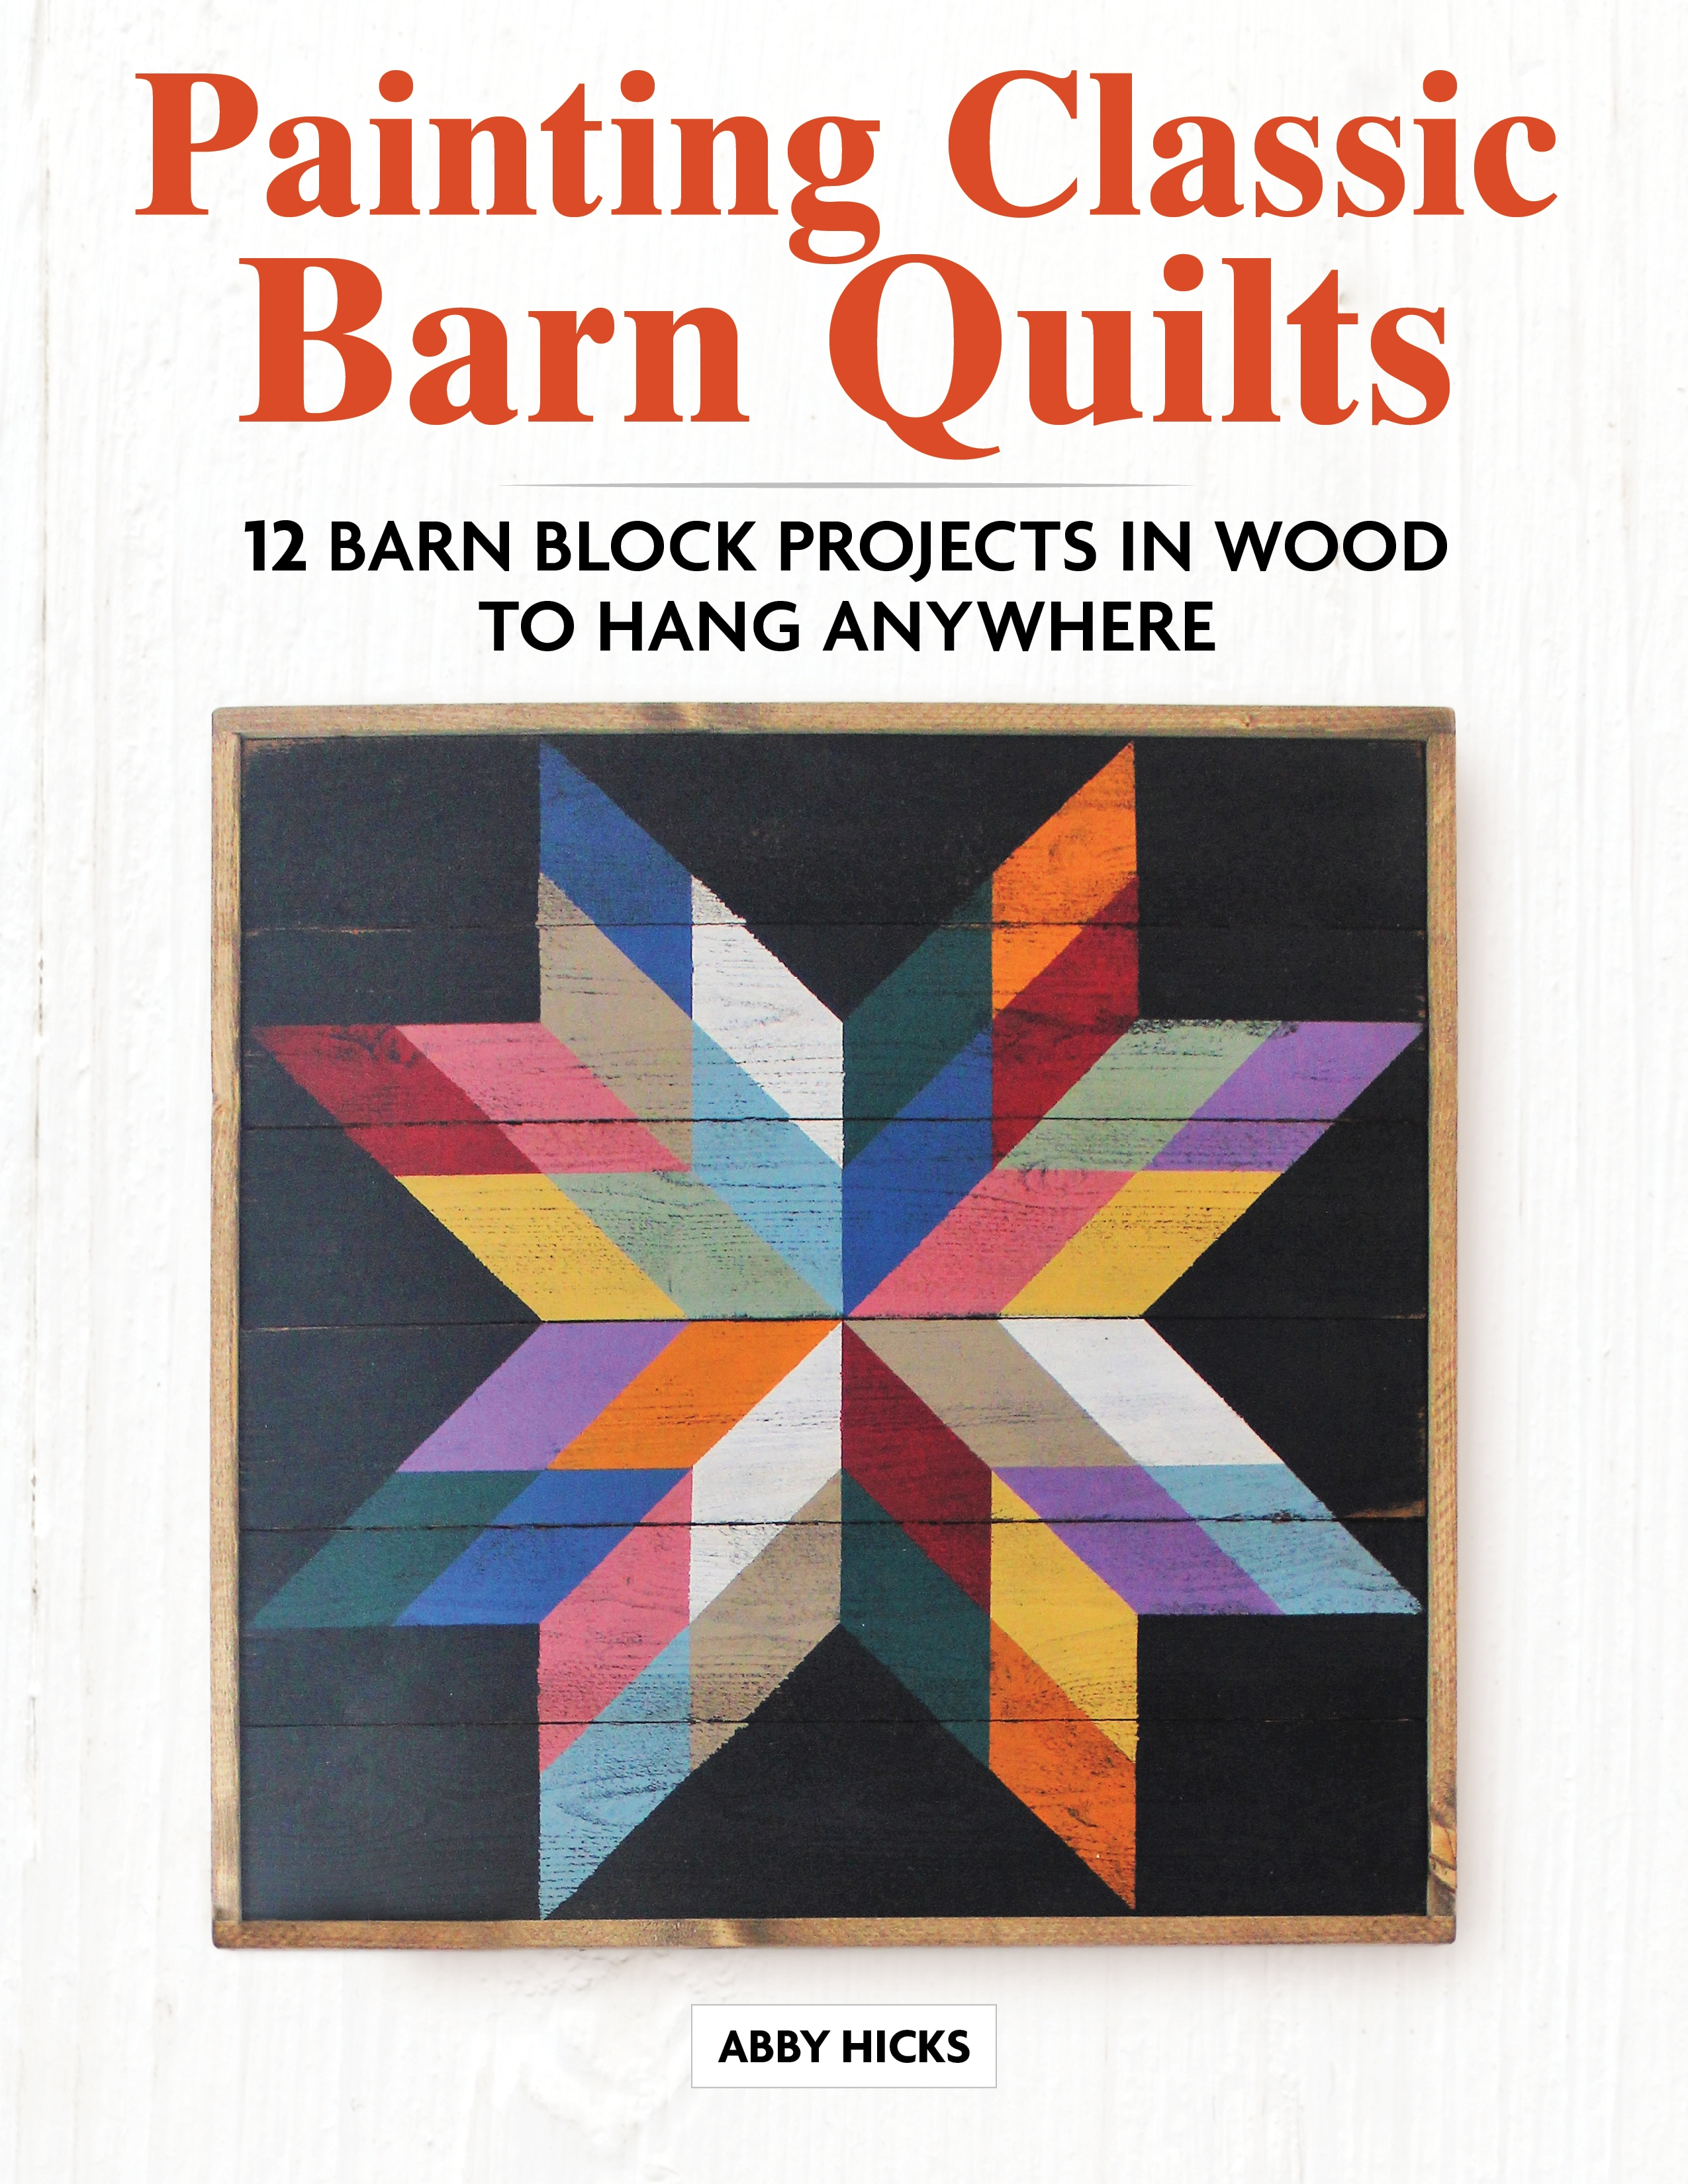 Painting Classic Barn Quilts